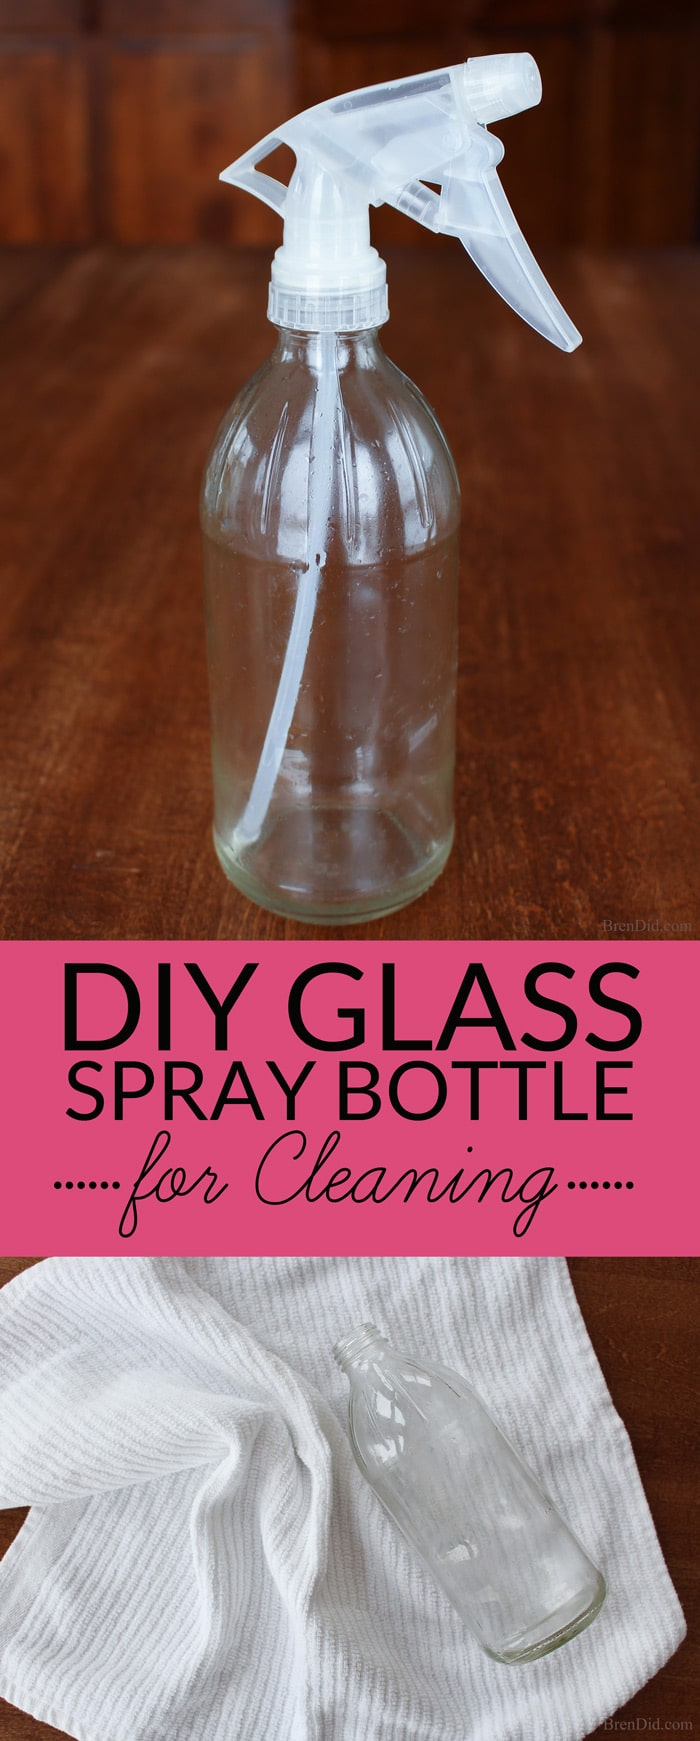 Get spray bottles for all your DIY cleaners for FREE with this easy upcycled project. Glass spray bottles do not react with essential oils and other green cleaning ingredients and are recommended by green cleaning experts.